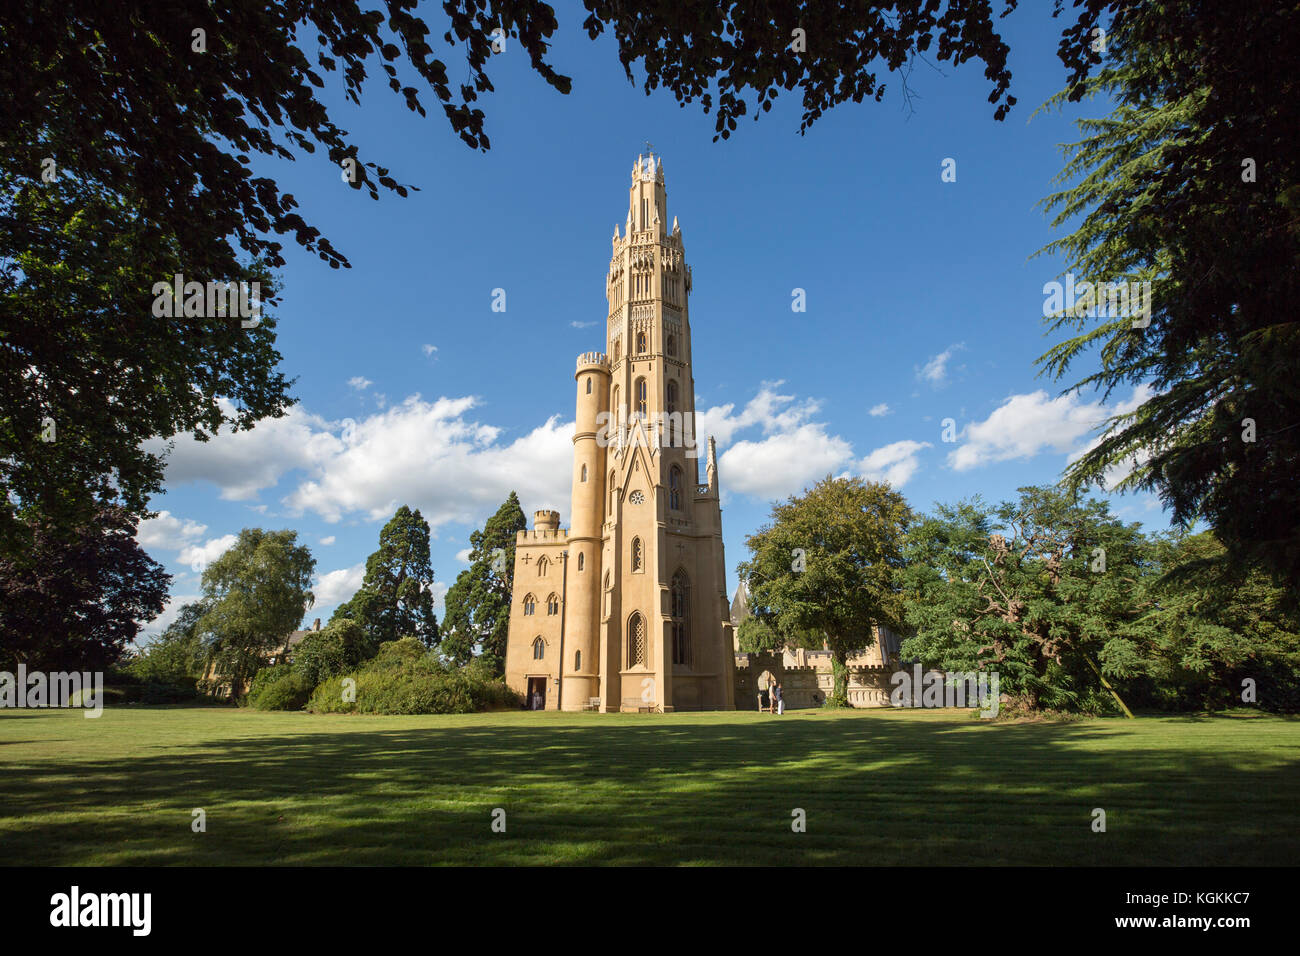 The Hadlow Tower, Hadlow Kent, UK. Grade 1 listed this is the tallest Gothic folly in existence. - Stock Image